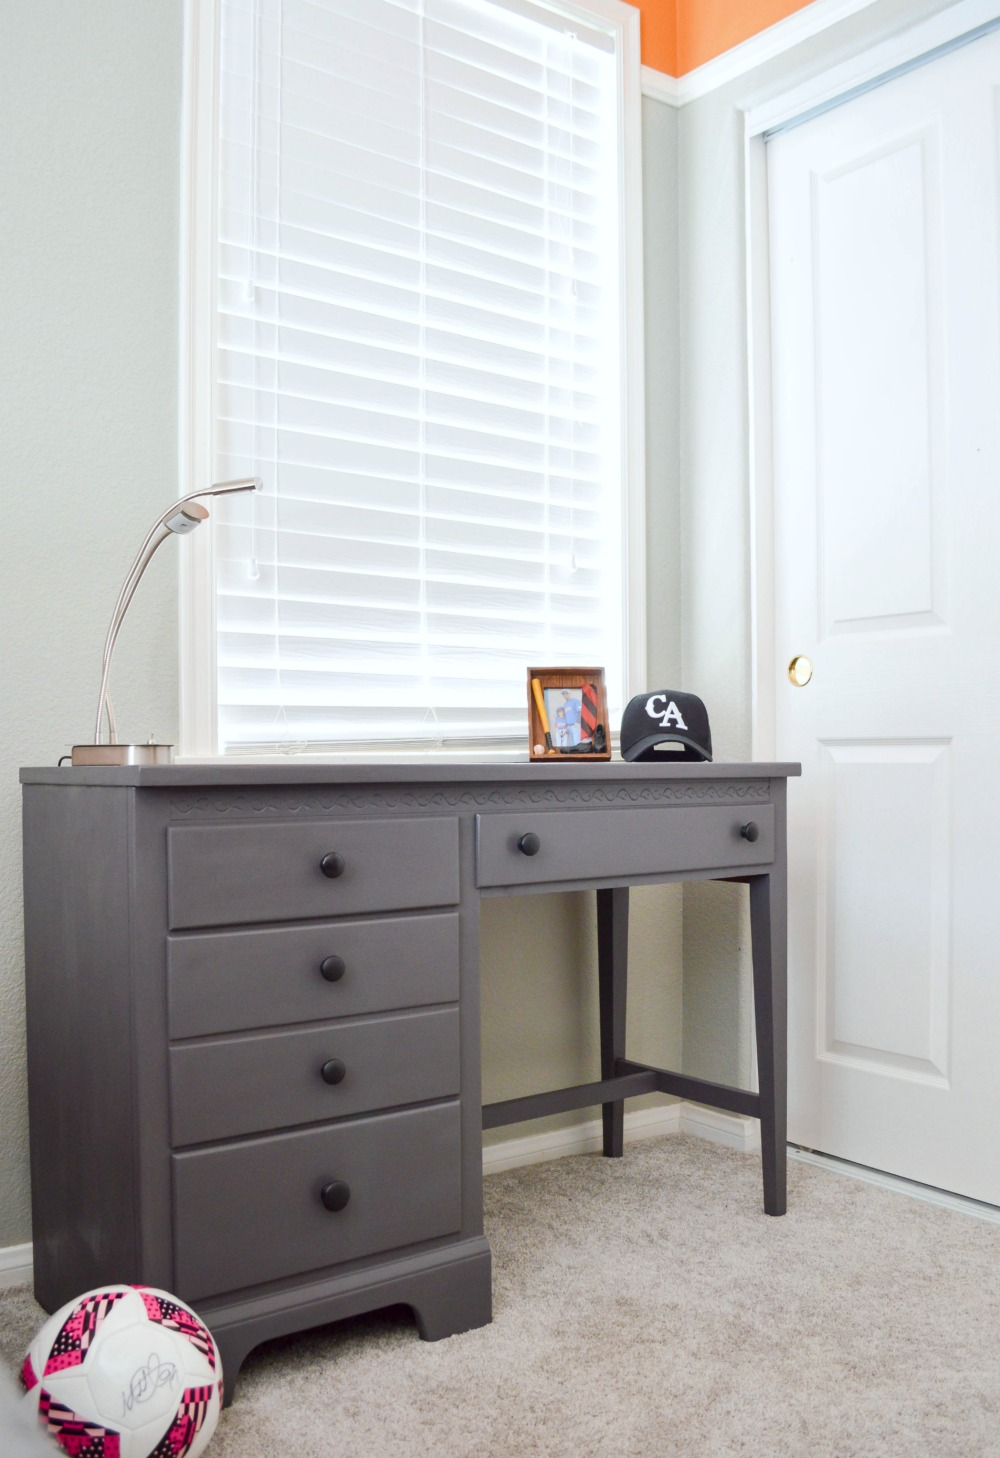 Charmant Painted Desk Makeover. This Was A Curbside Find And With A Little Sanding  And A